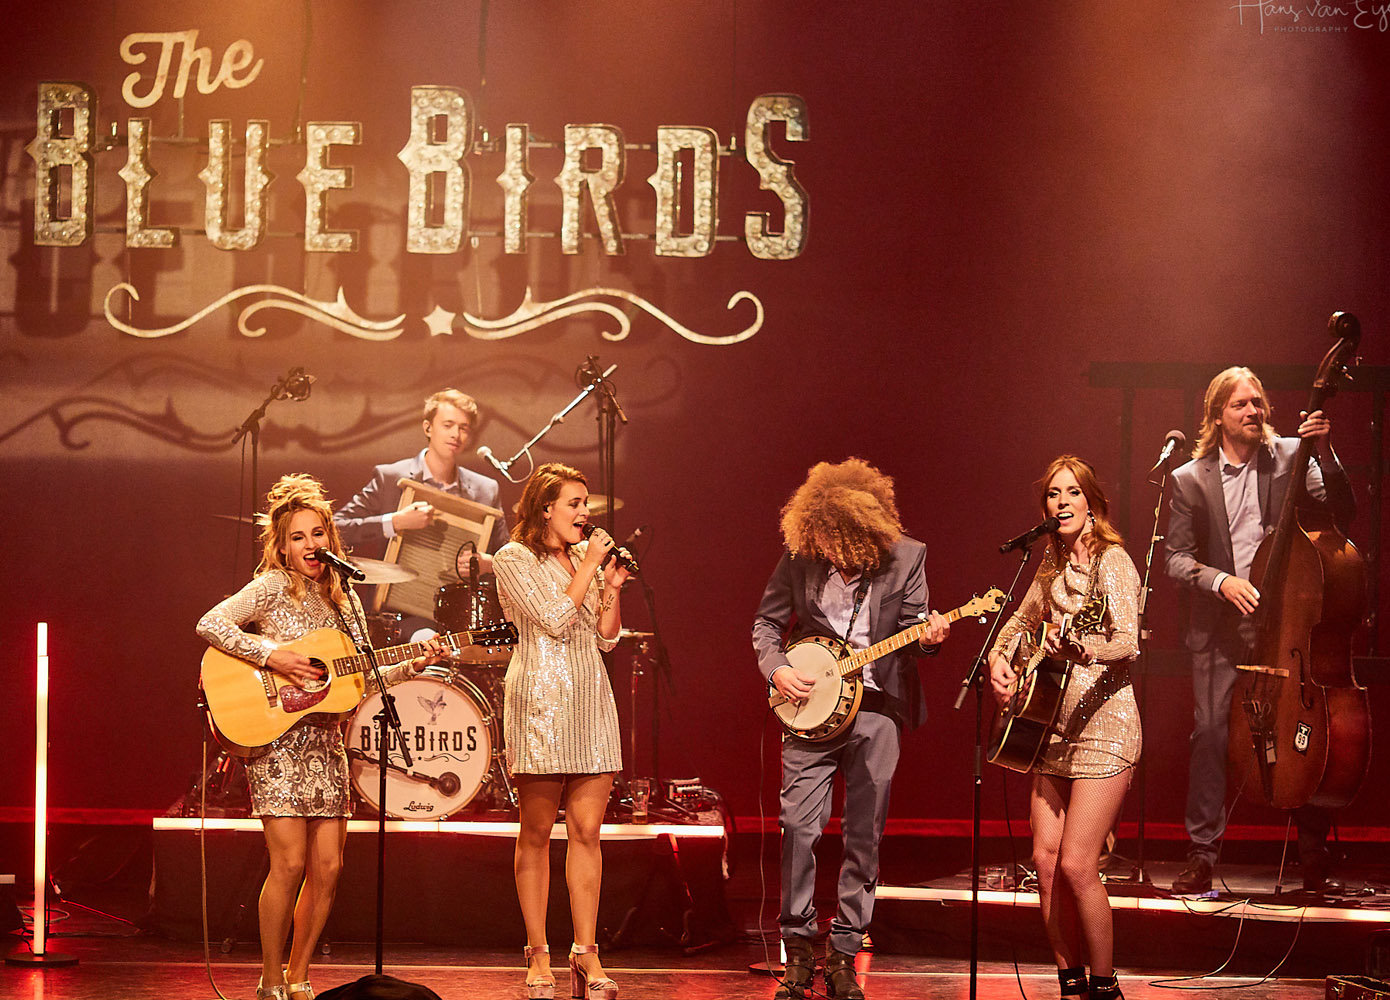 The Bluebirds - Elske DeWall, Krystl en Rachel Louise